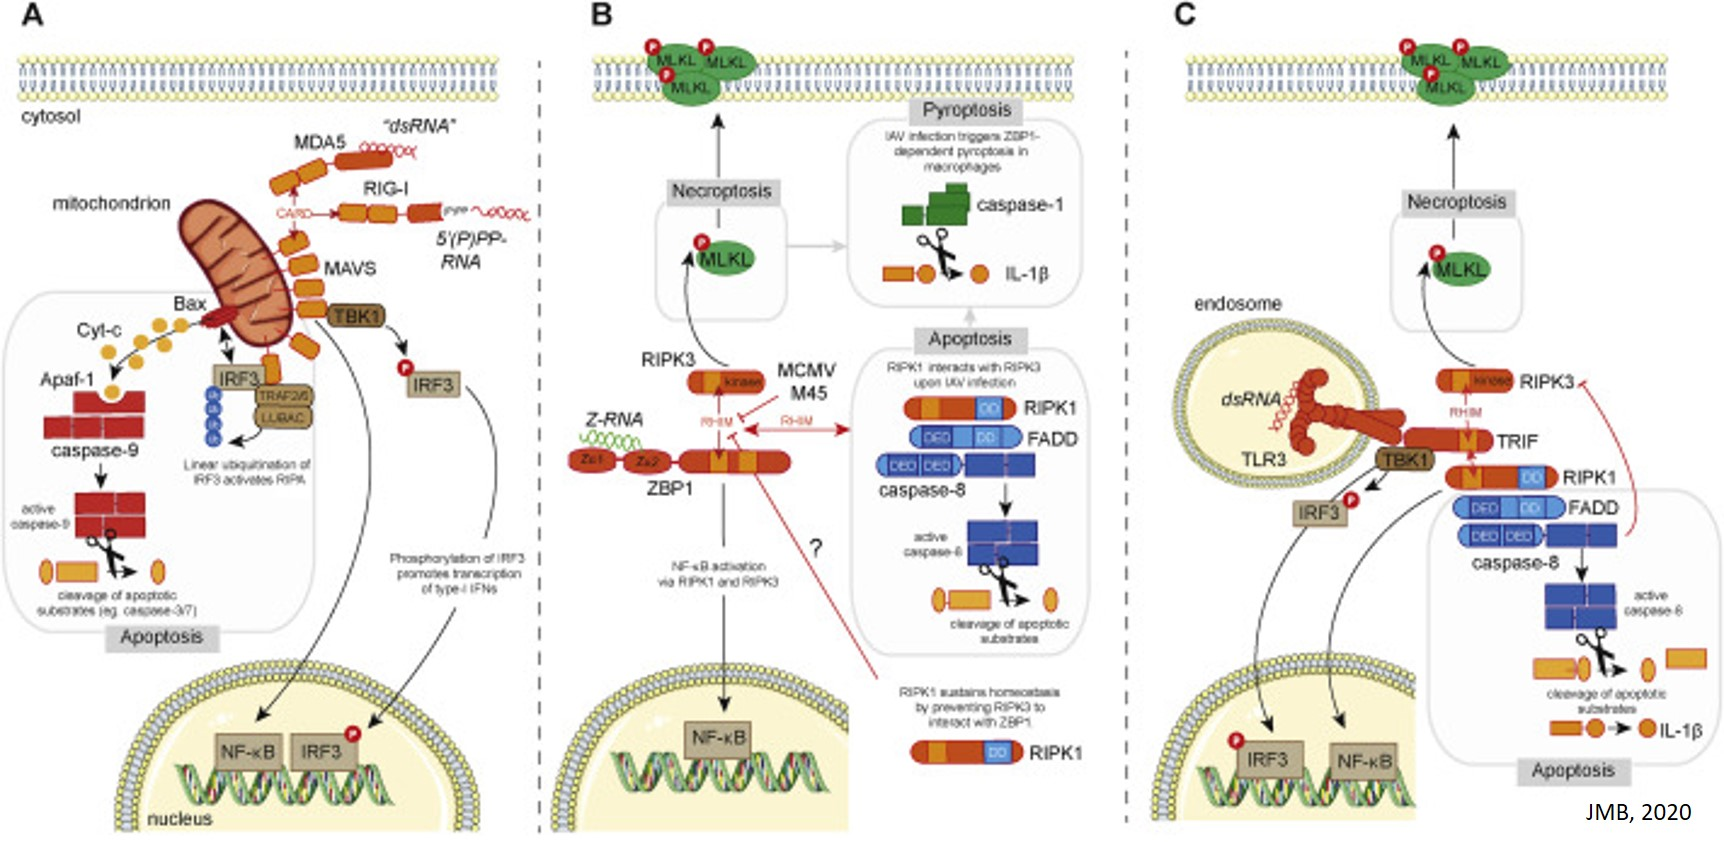 A mechanism for Z-DNA mediated cell death and inflammation